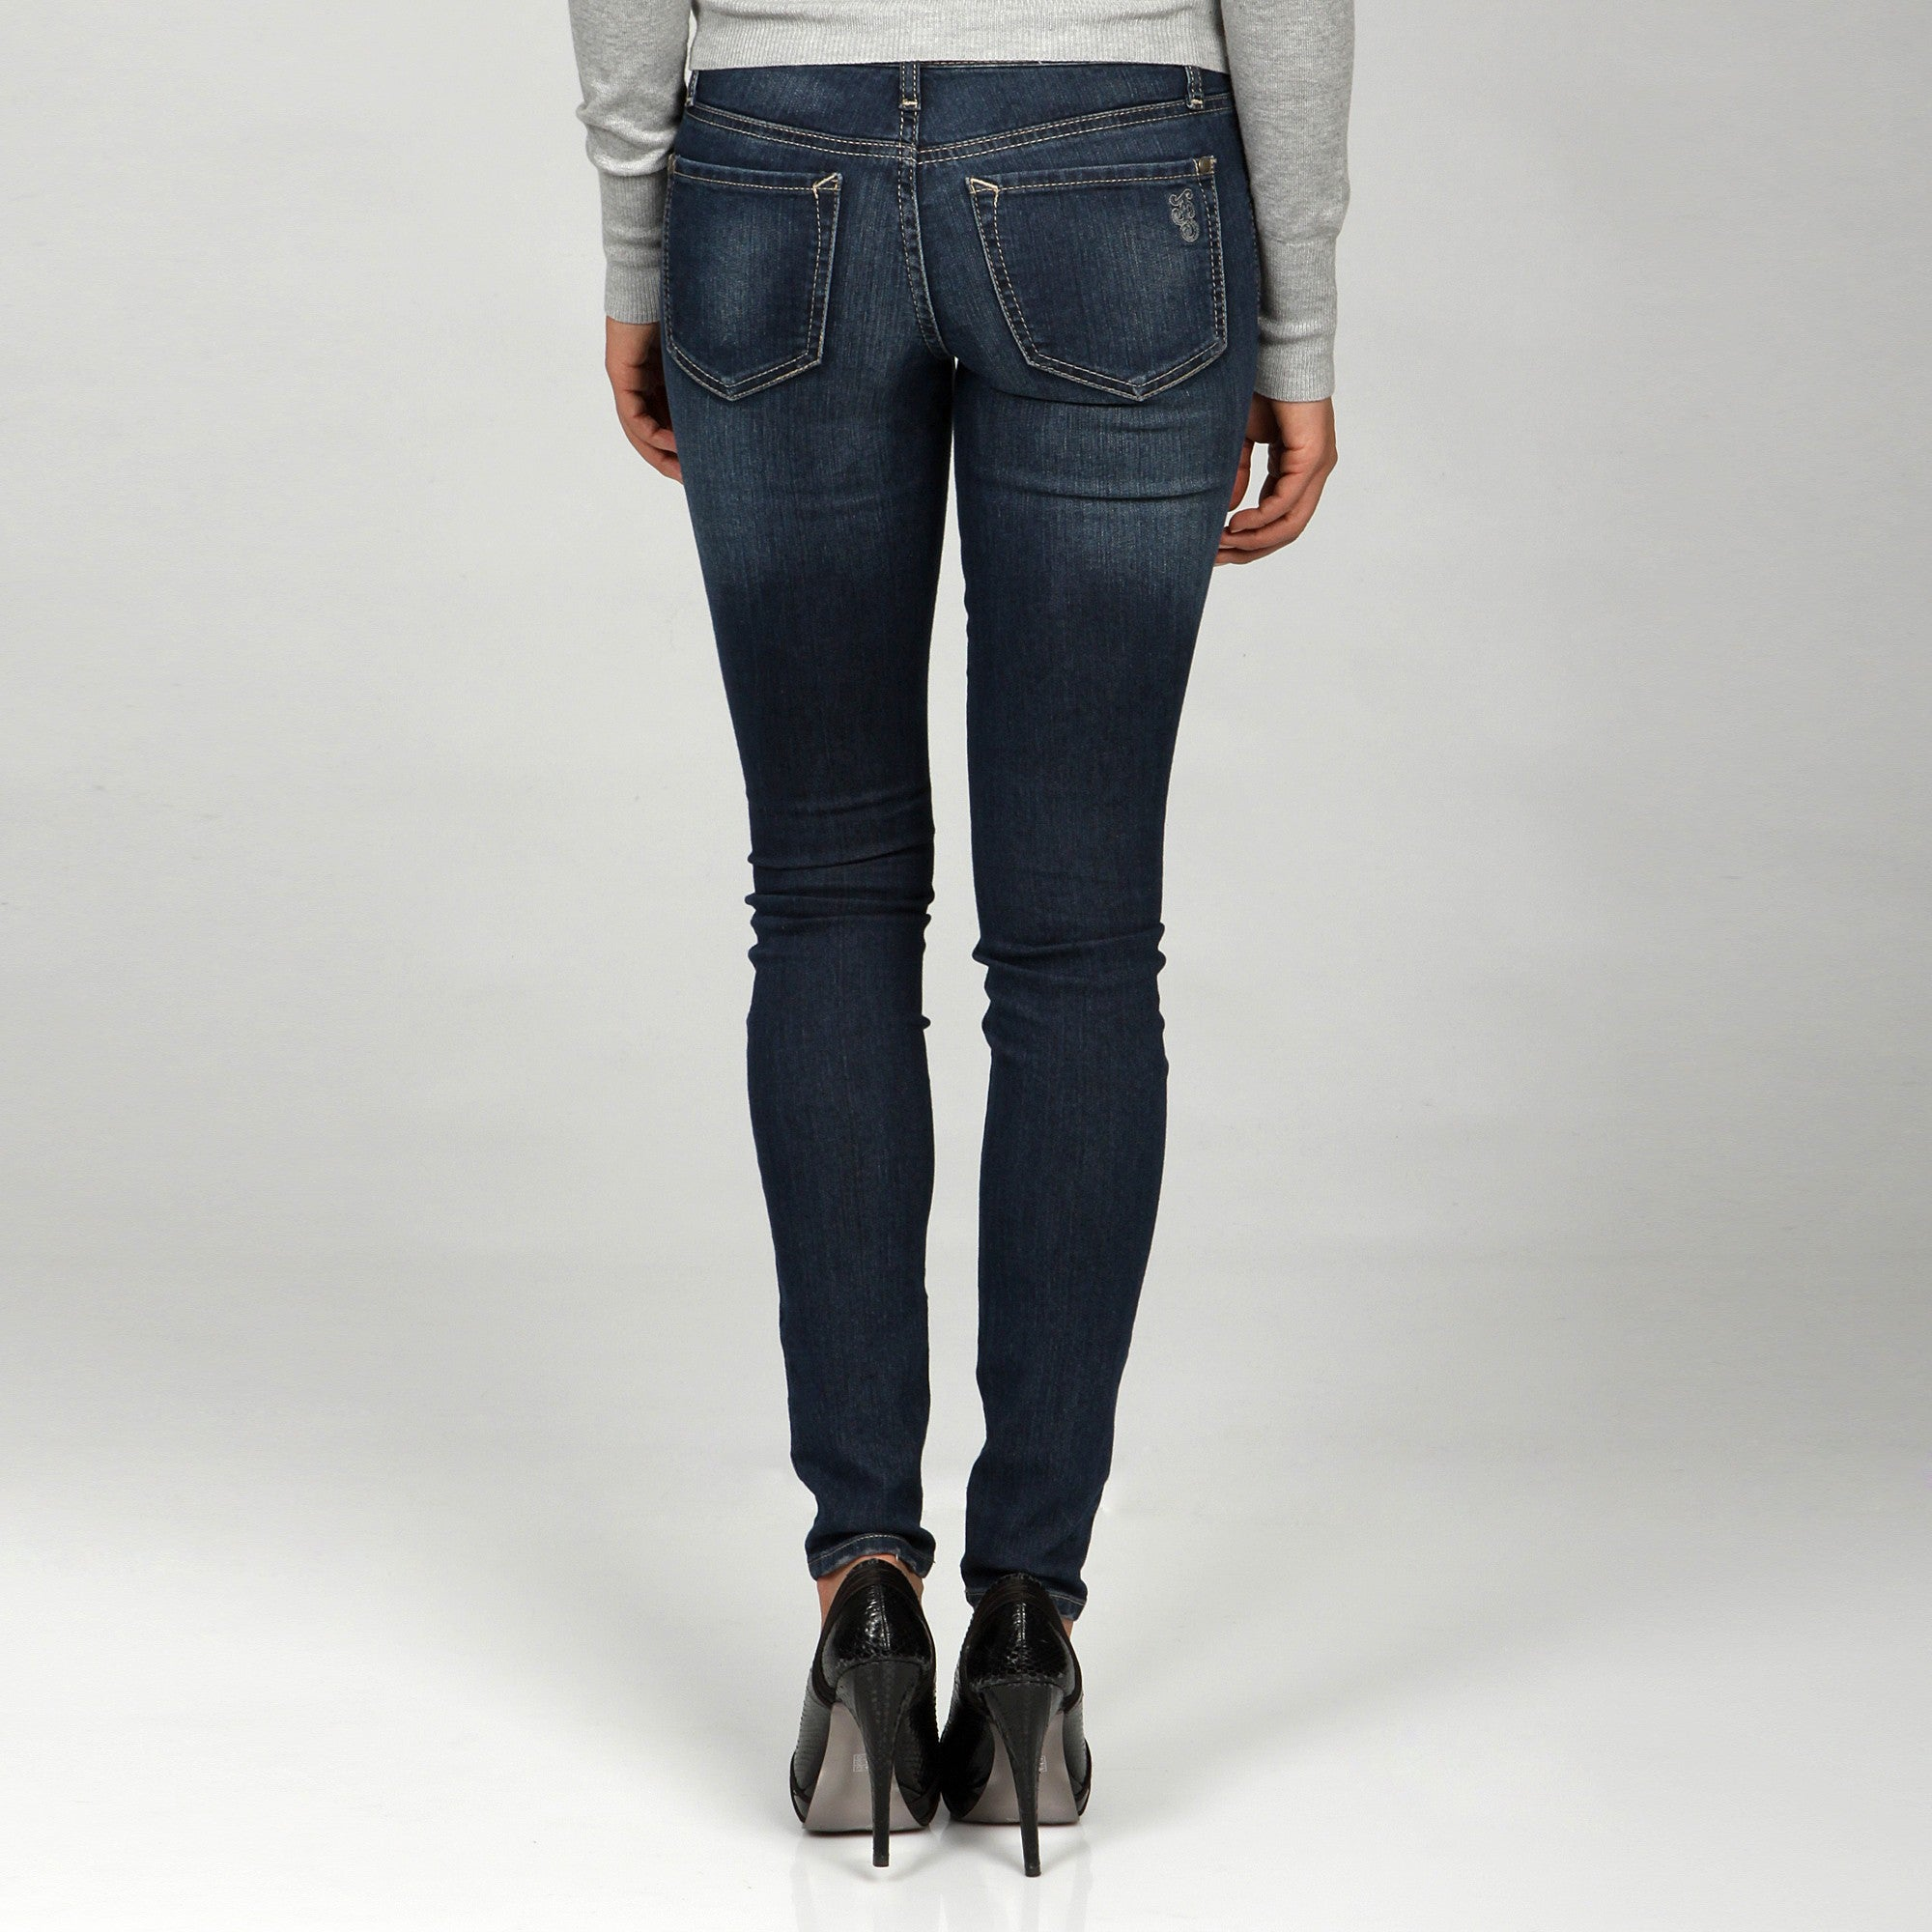 90b7296c205f8 Shop Jessica Simpson Junior's 'Kiss Me' Jegging - Free Shipping On Orders  Over $45 - Overstock - 6237744